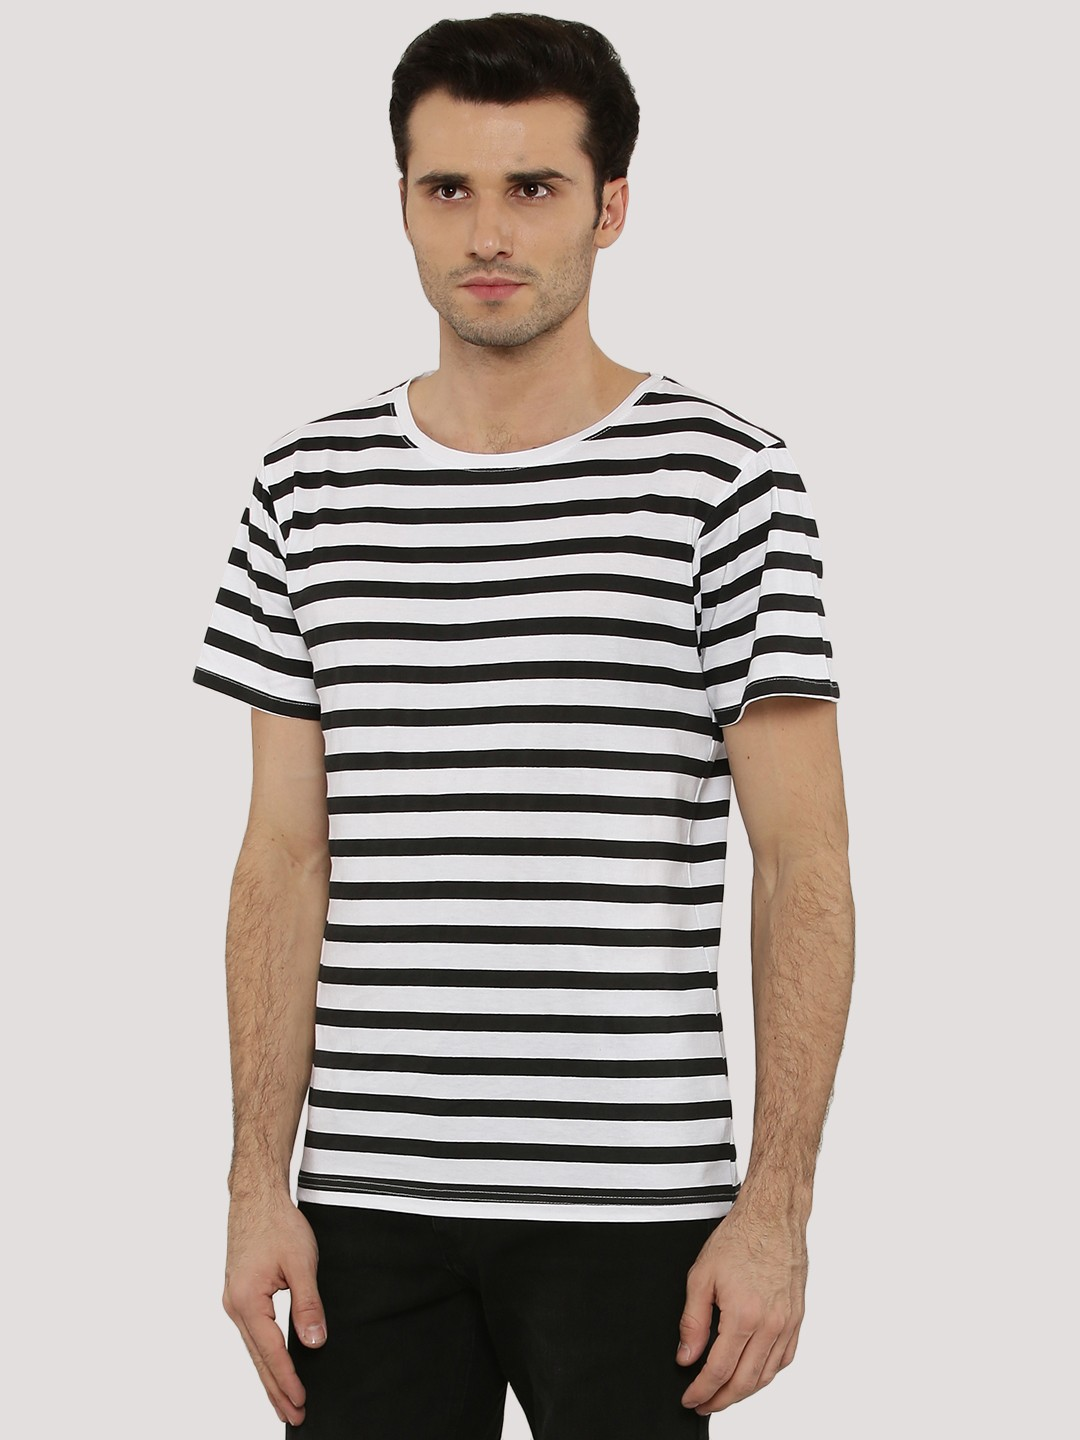 Black t shirt with white stripes - Blue Saint Striped T Shirt